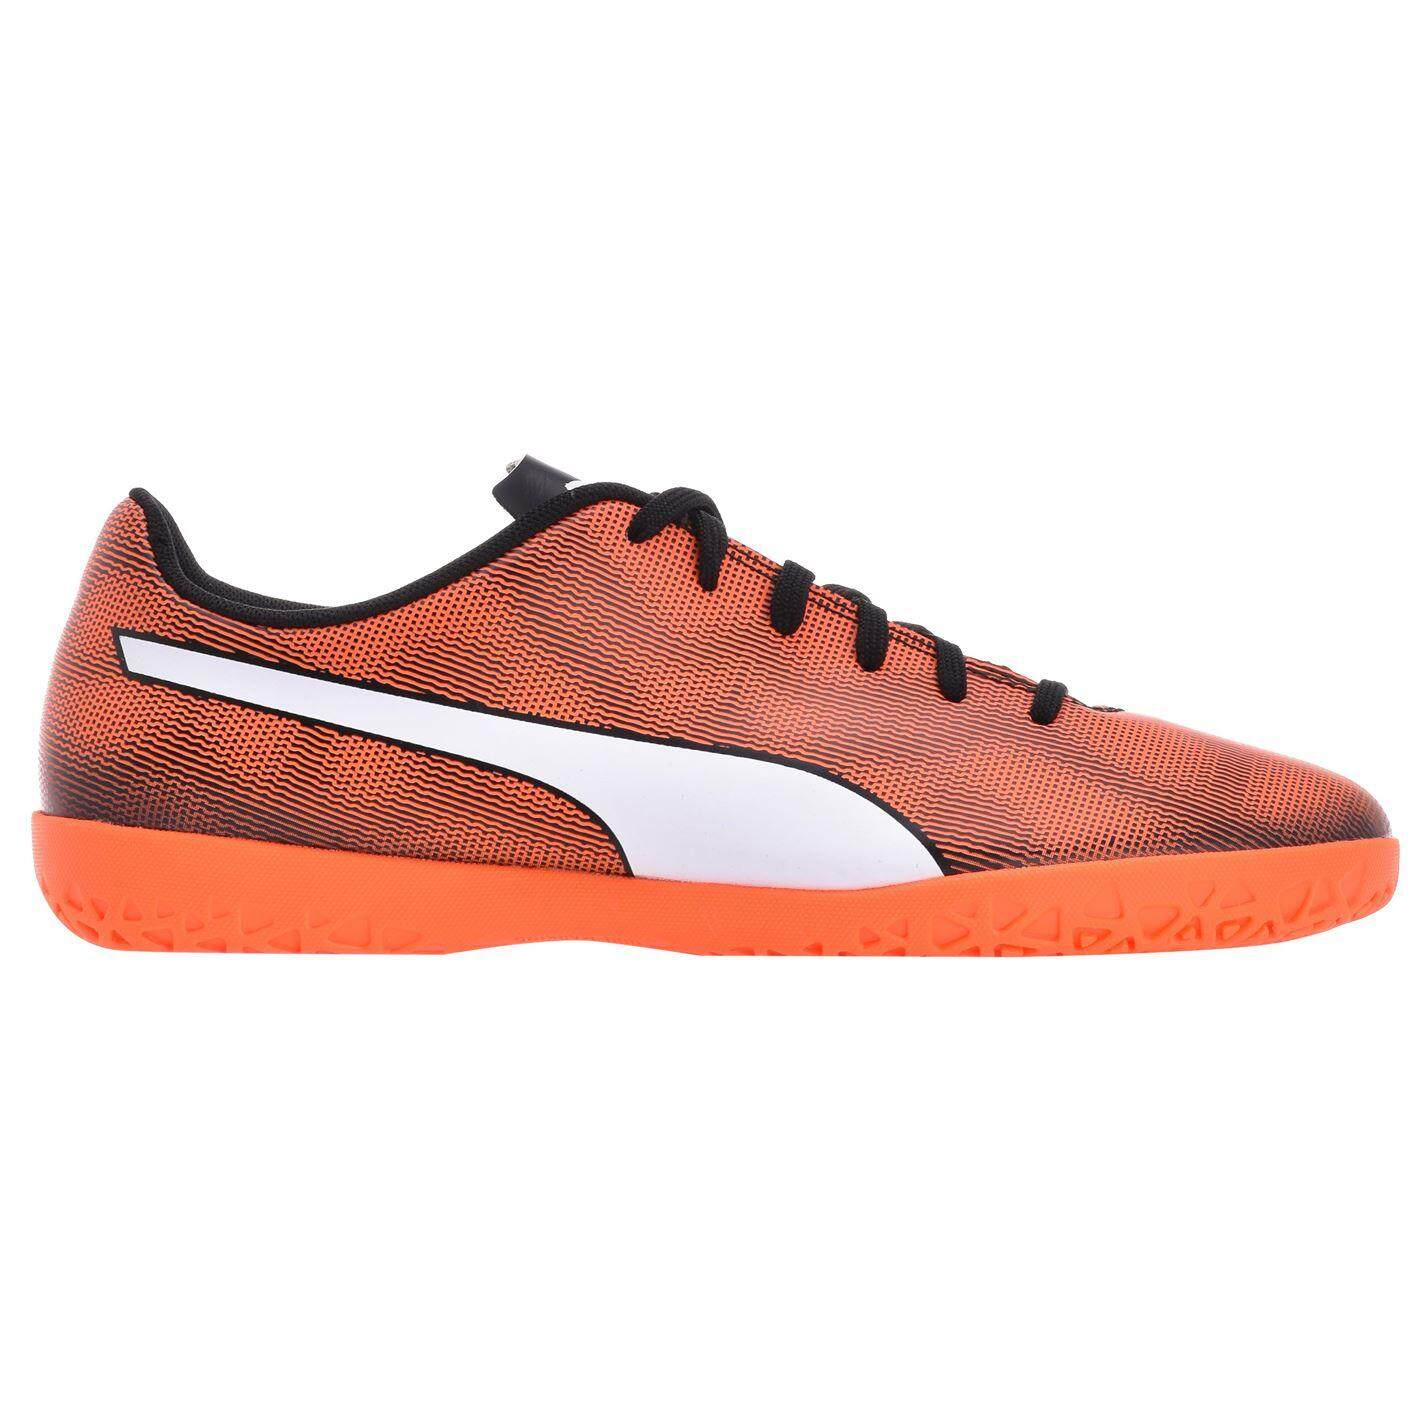 Puma Football - Buy Puma Football at Best Price in Malaysia  14715cbab9